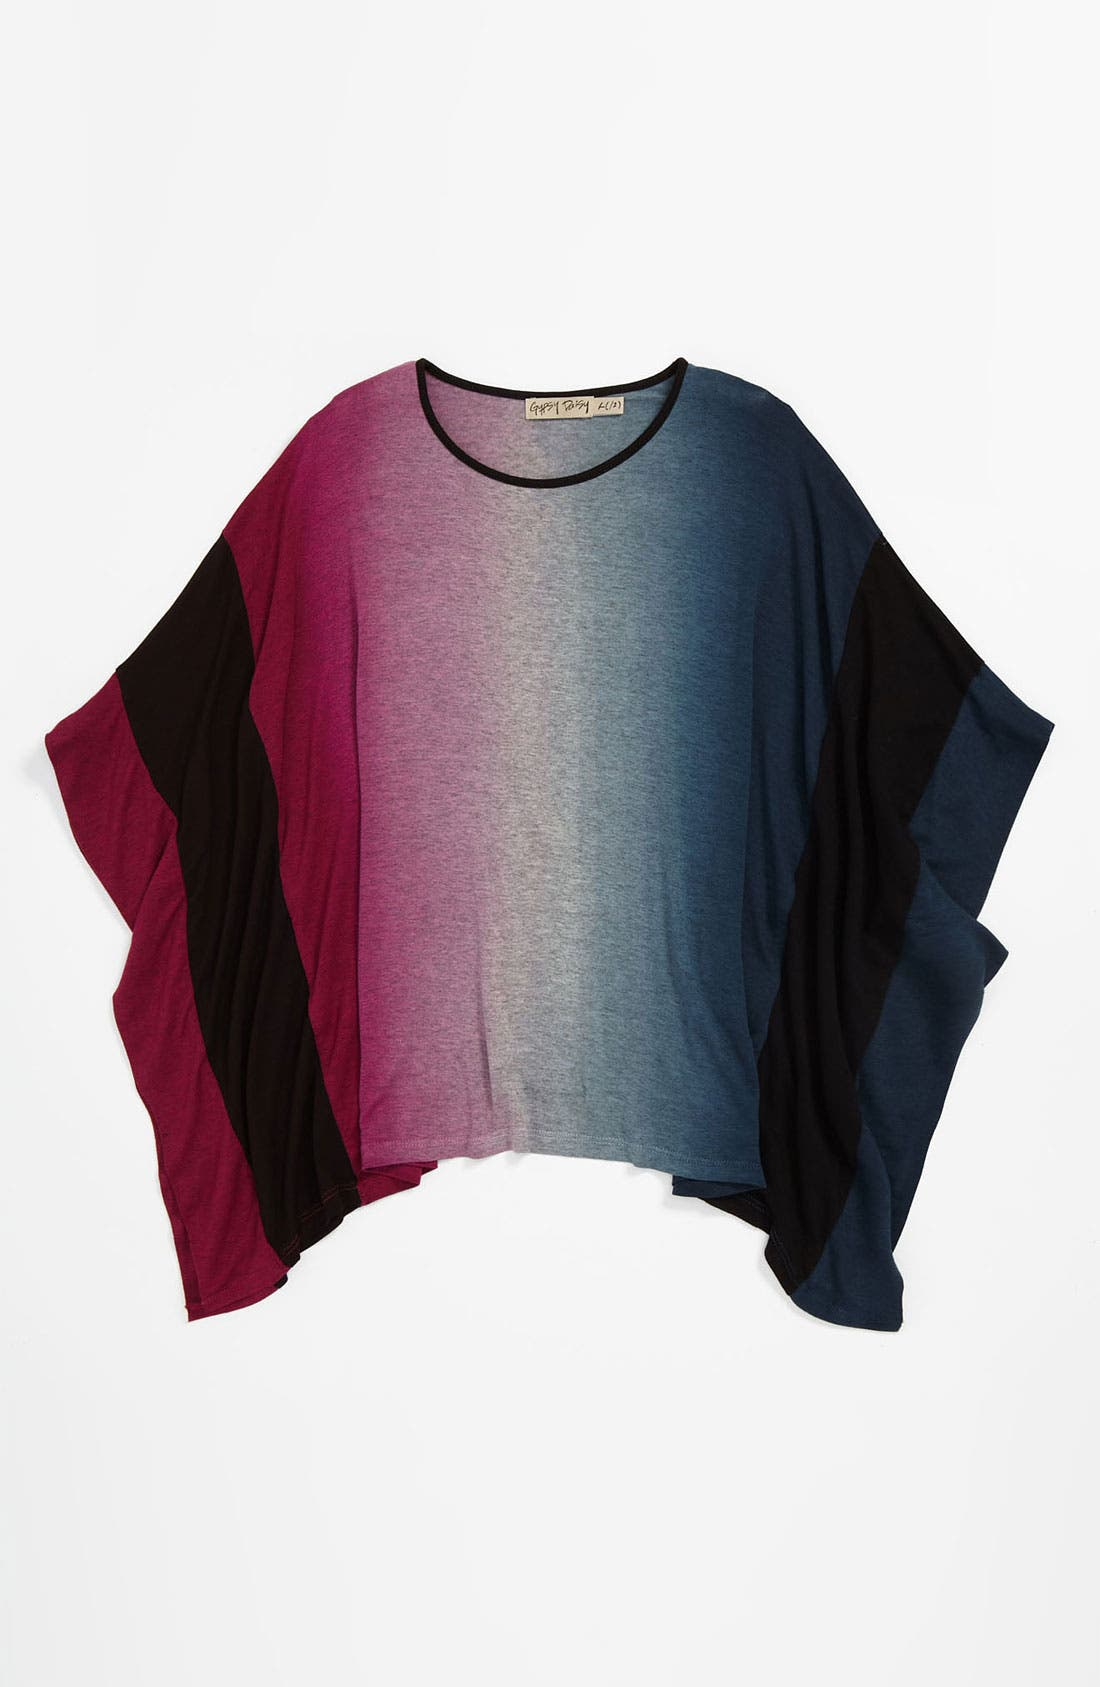 Alternate Image 1 Selected - Gypsy Daisy Colorblock Poncho (Big Girls)